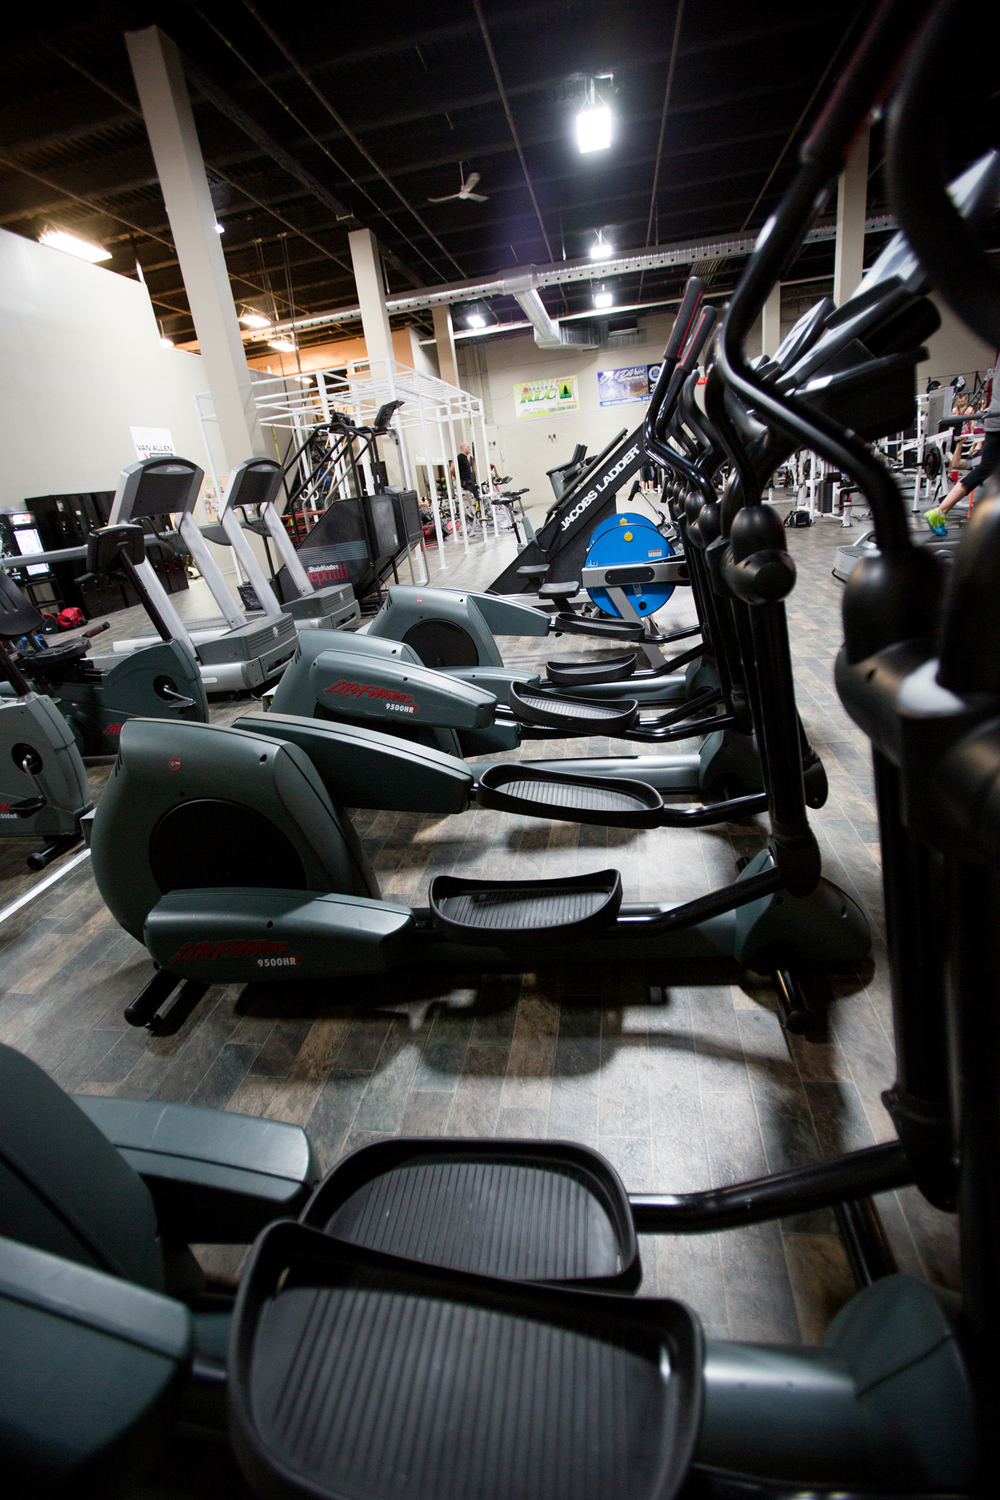 Ellipticals, Stair Climbers, Treadmills and more!